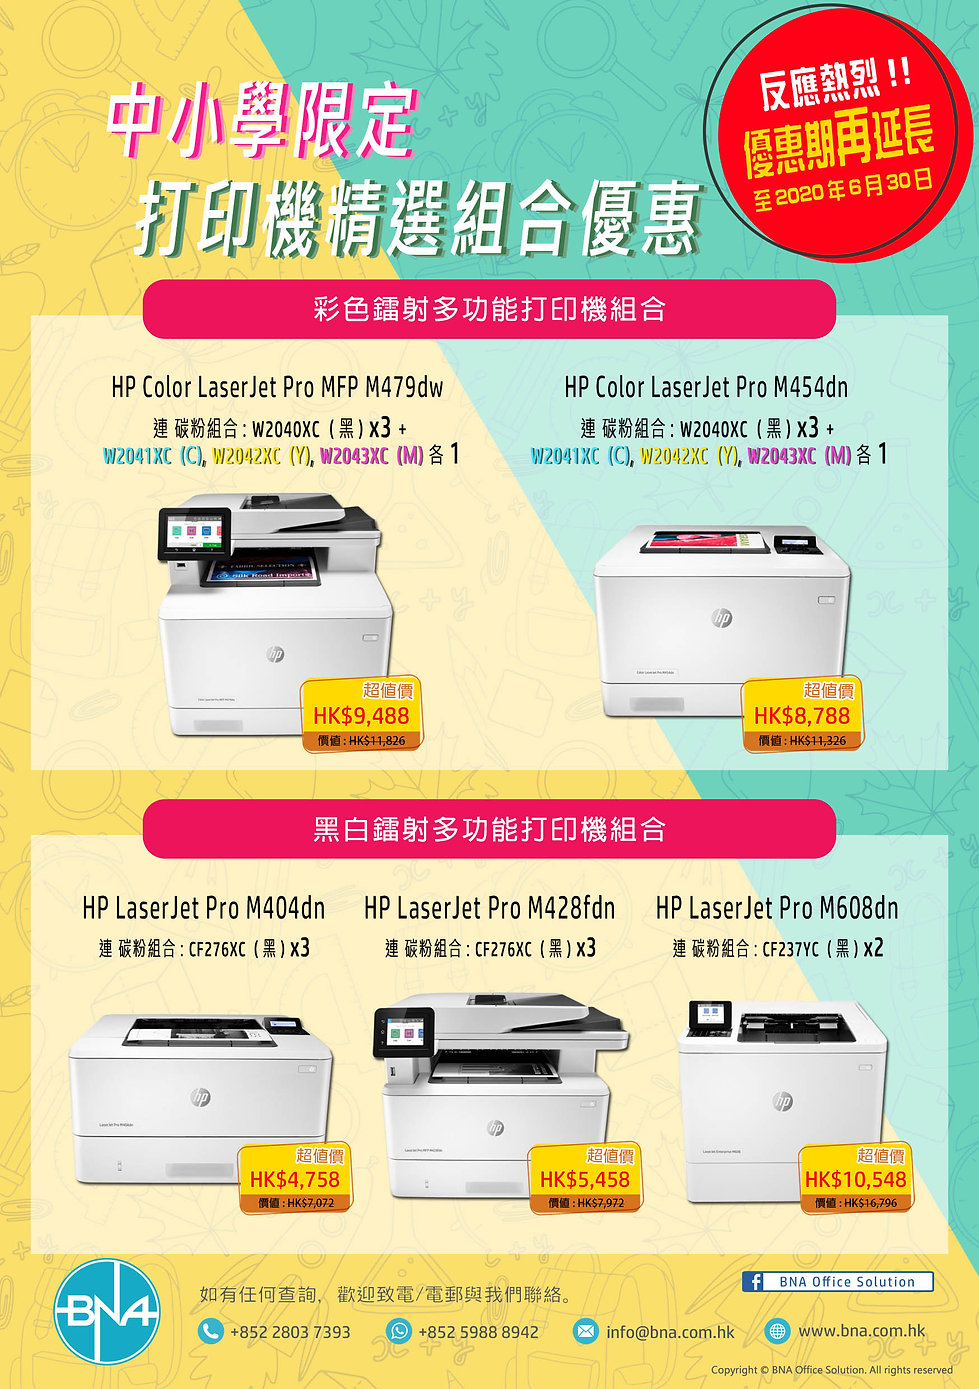 HP K12 IB Refresh Program3.jpg